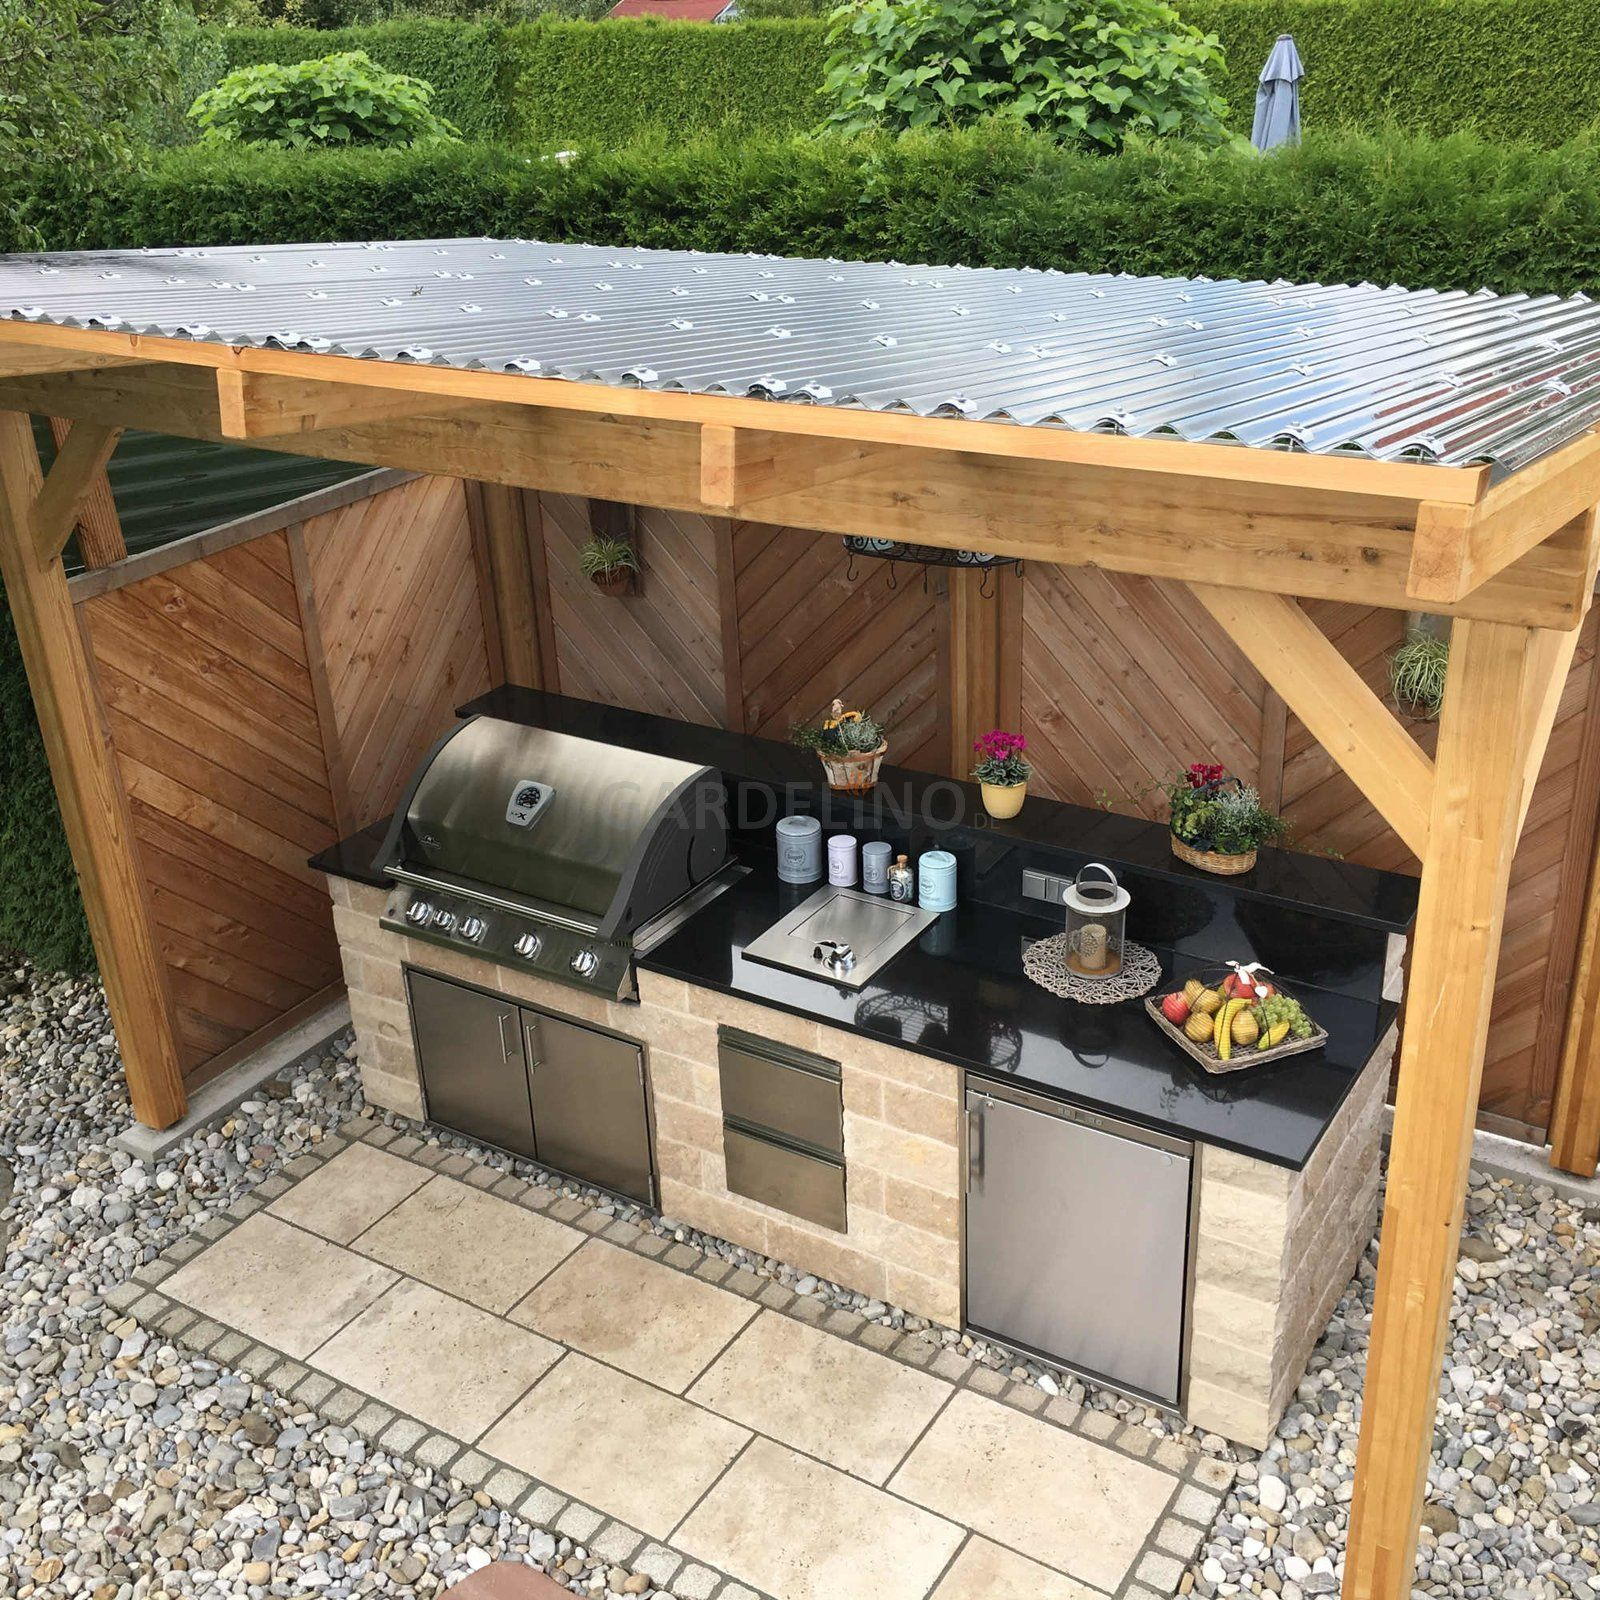 The outdoor kitchen a guide Outdoor kitchen trend